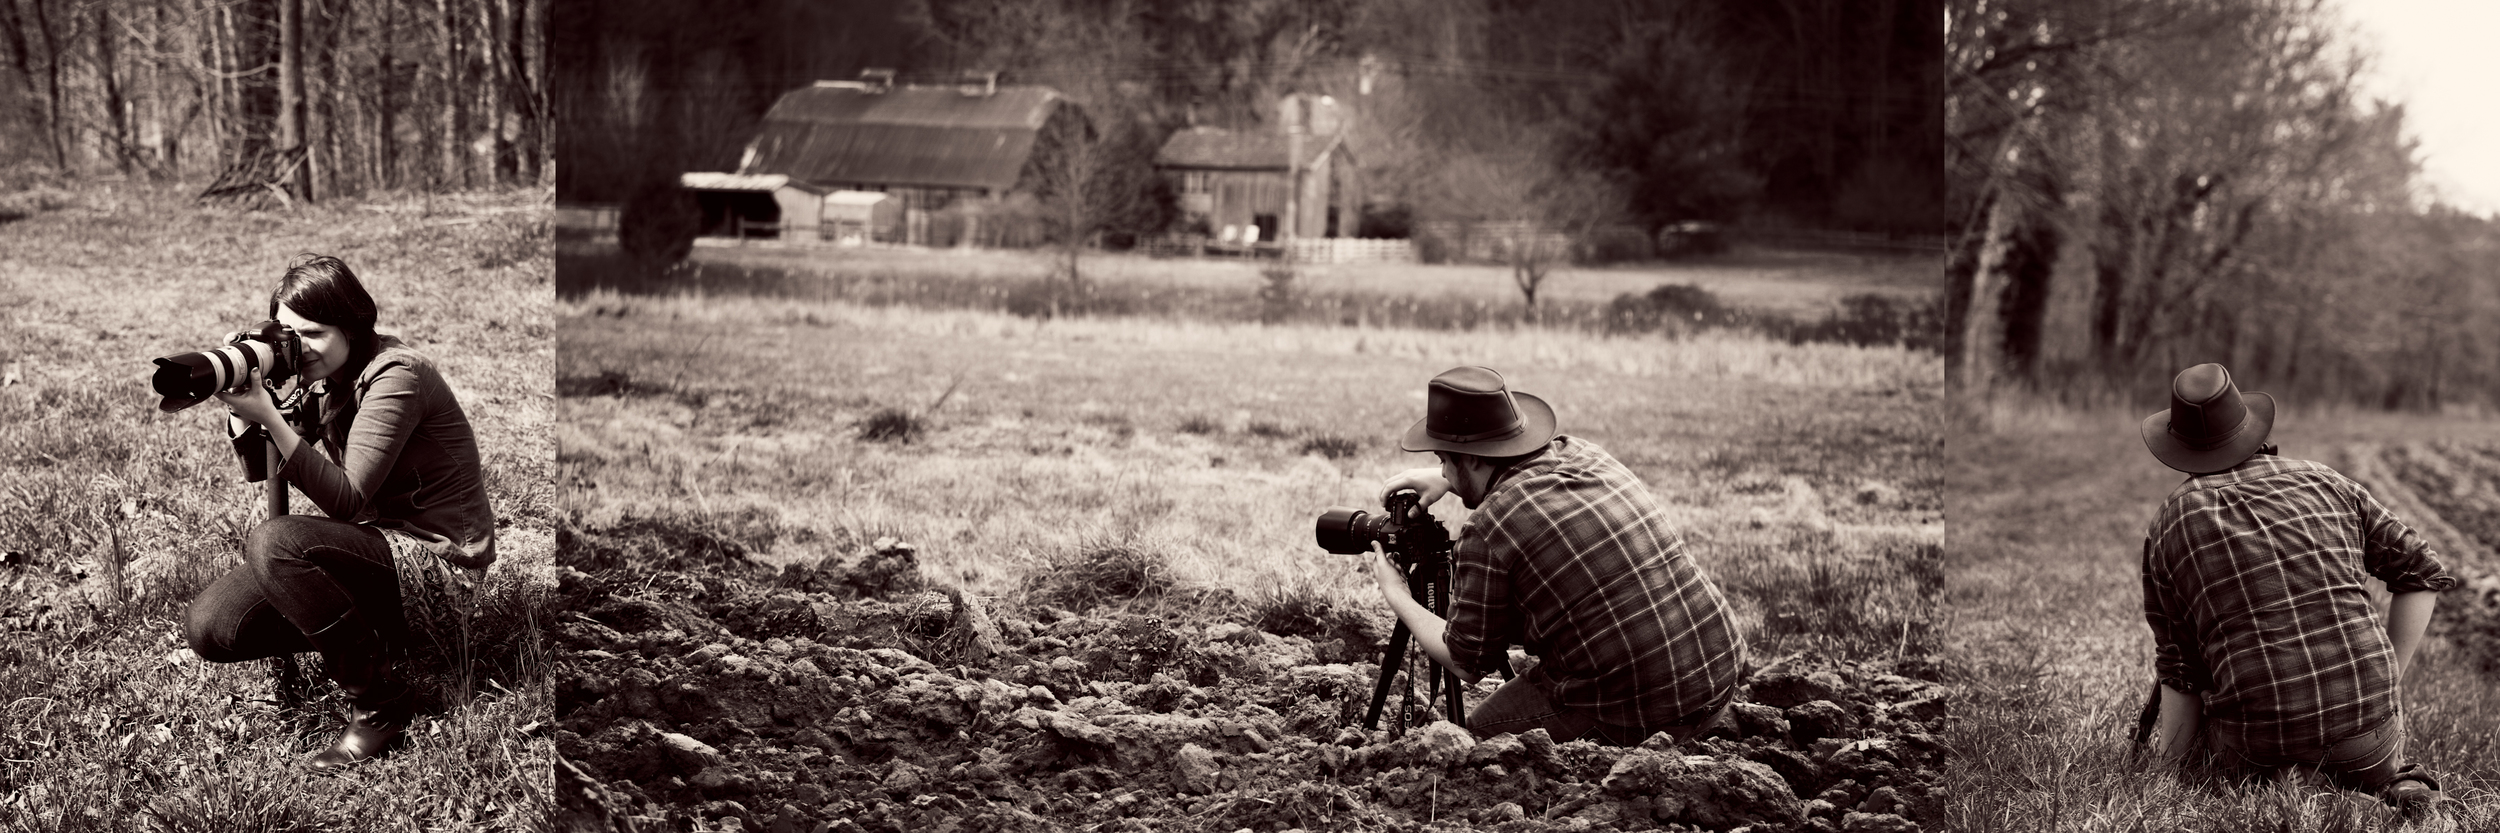 Revival Photography in the town of Valle Crucis